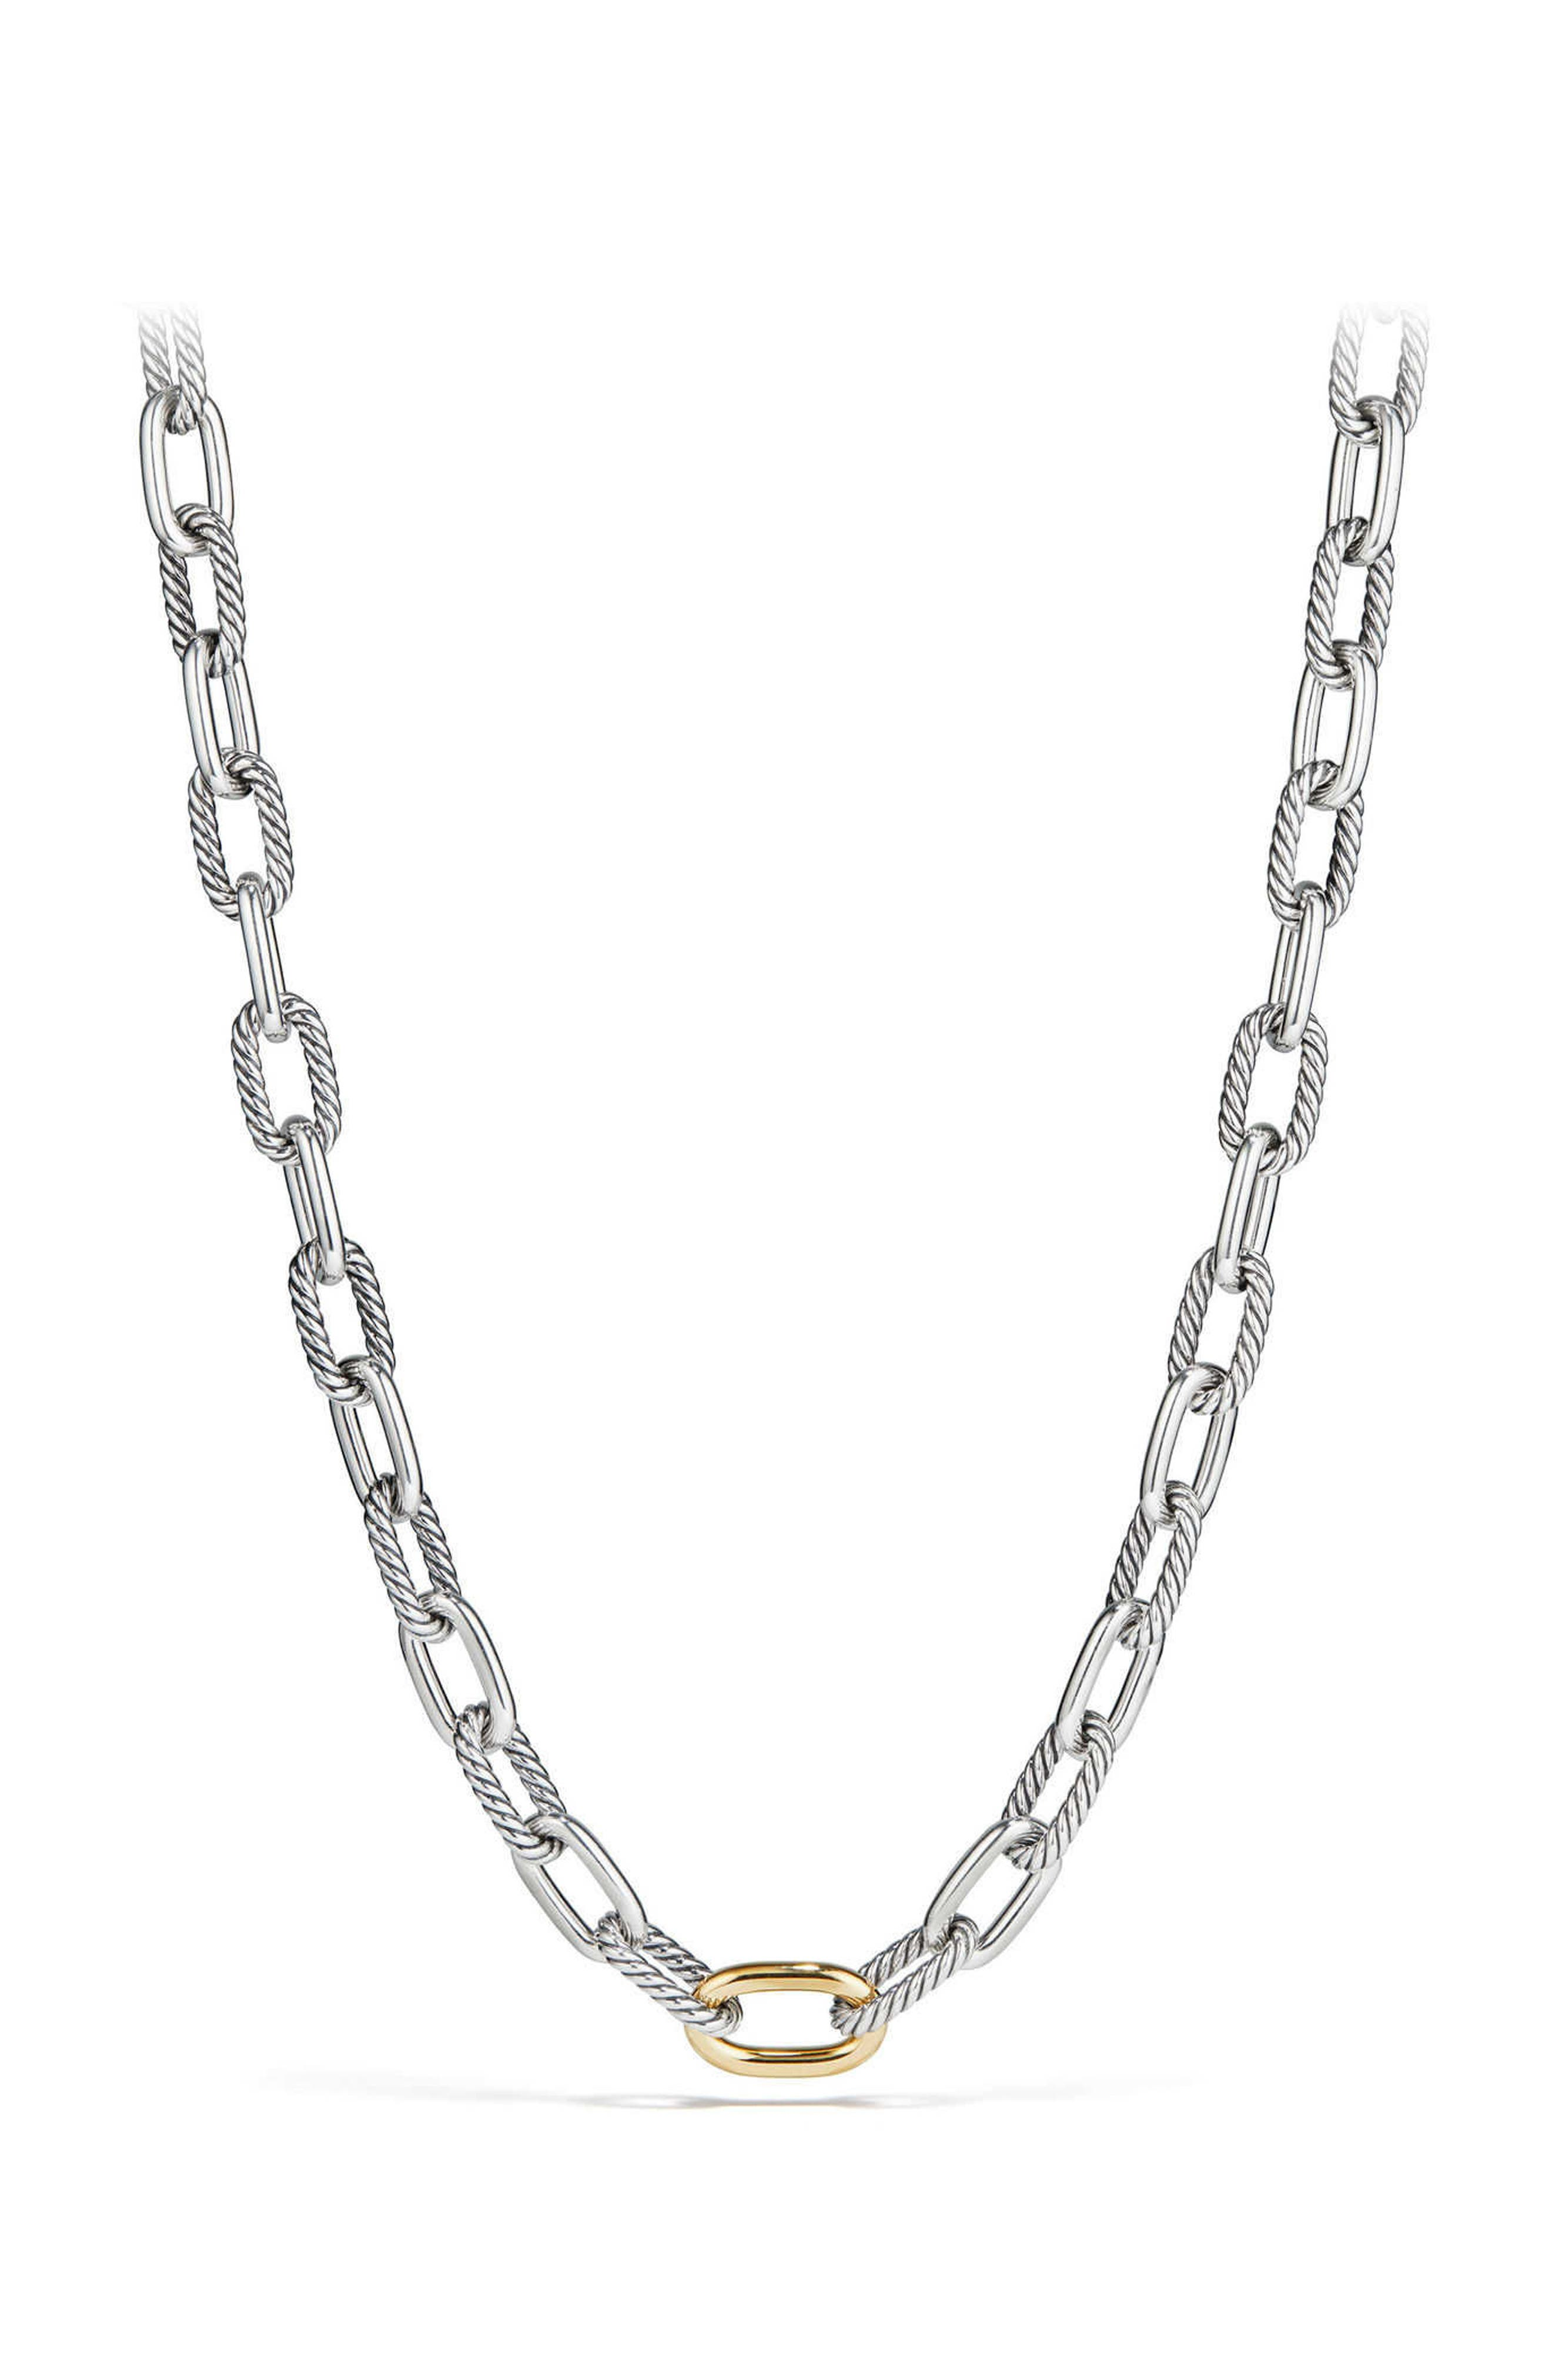 Madison Chain Medium Necklace,                             Main thumbnail 1, color,                             GOLD/ SILVER